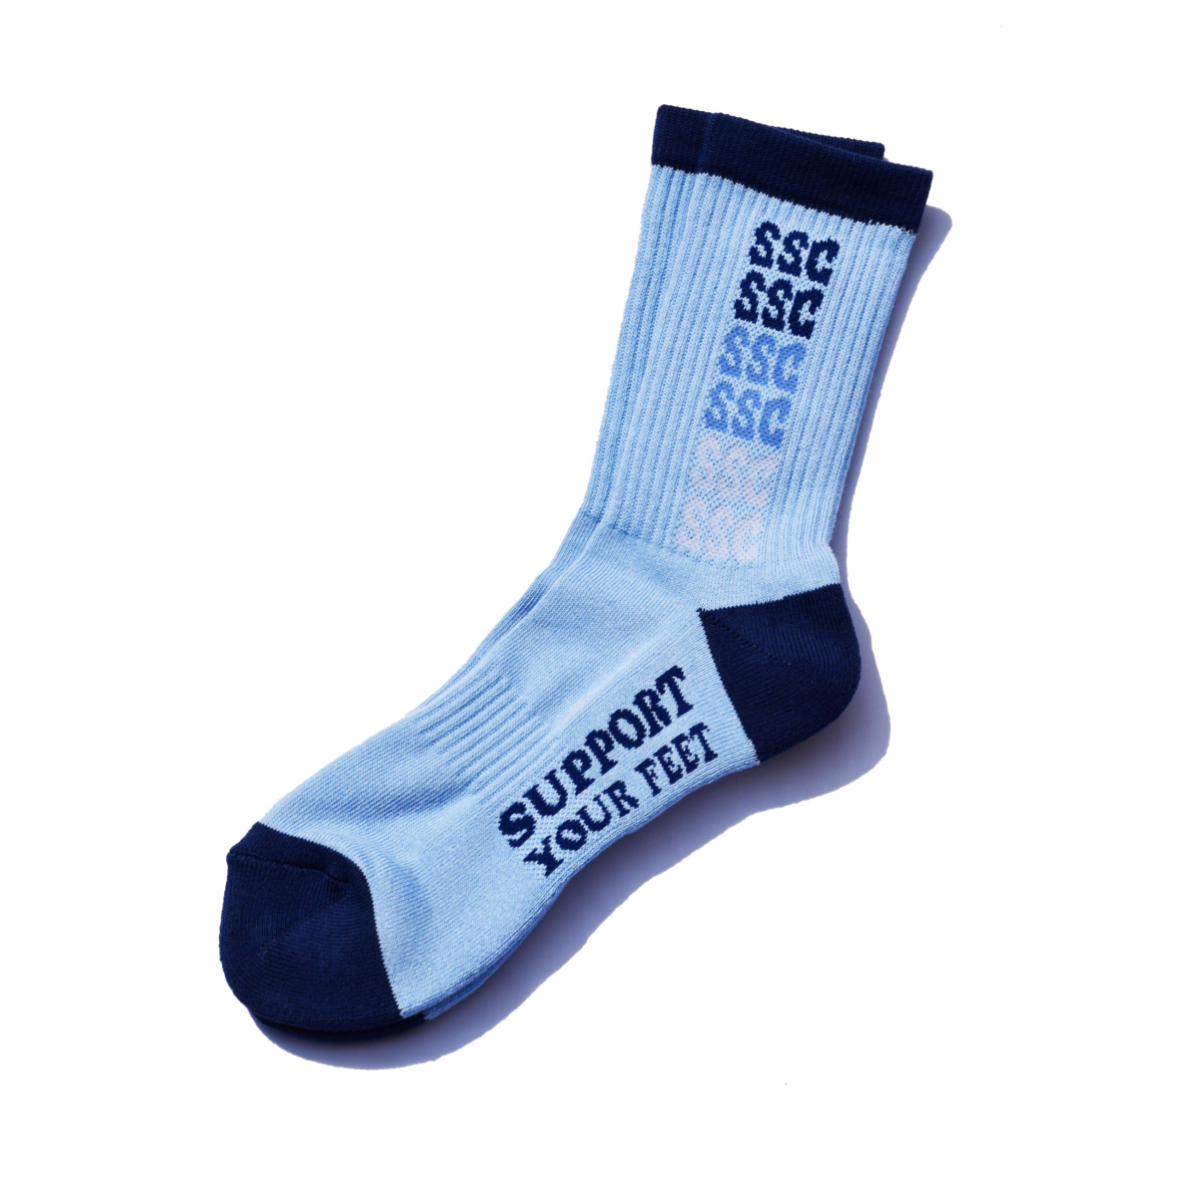 SURF SKATE CAMP #SSC Rainbow Socks Light Blue/Navy